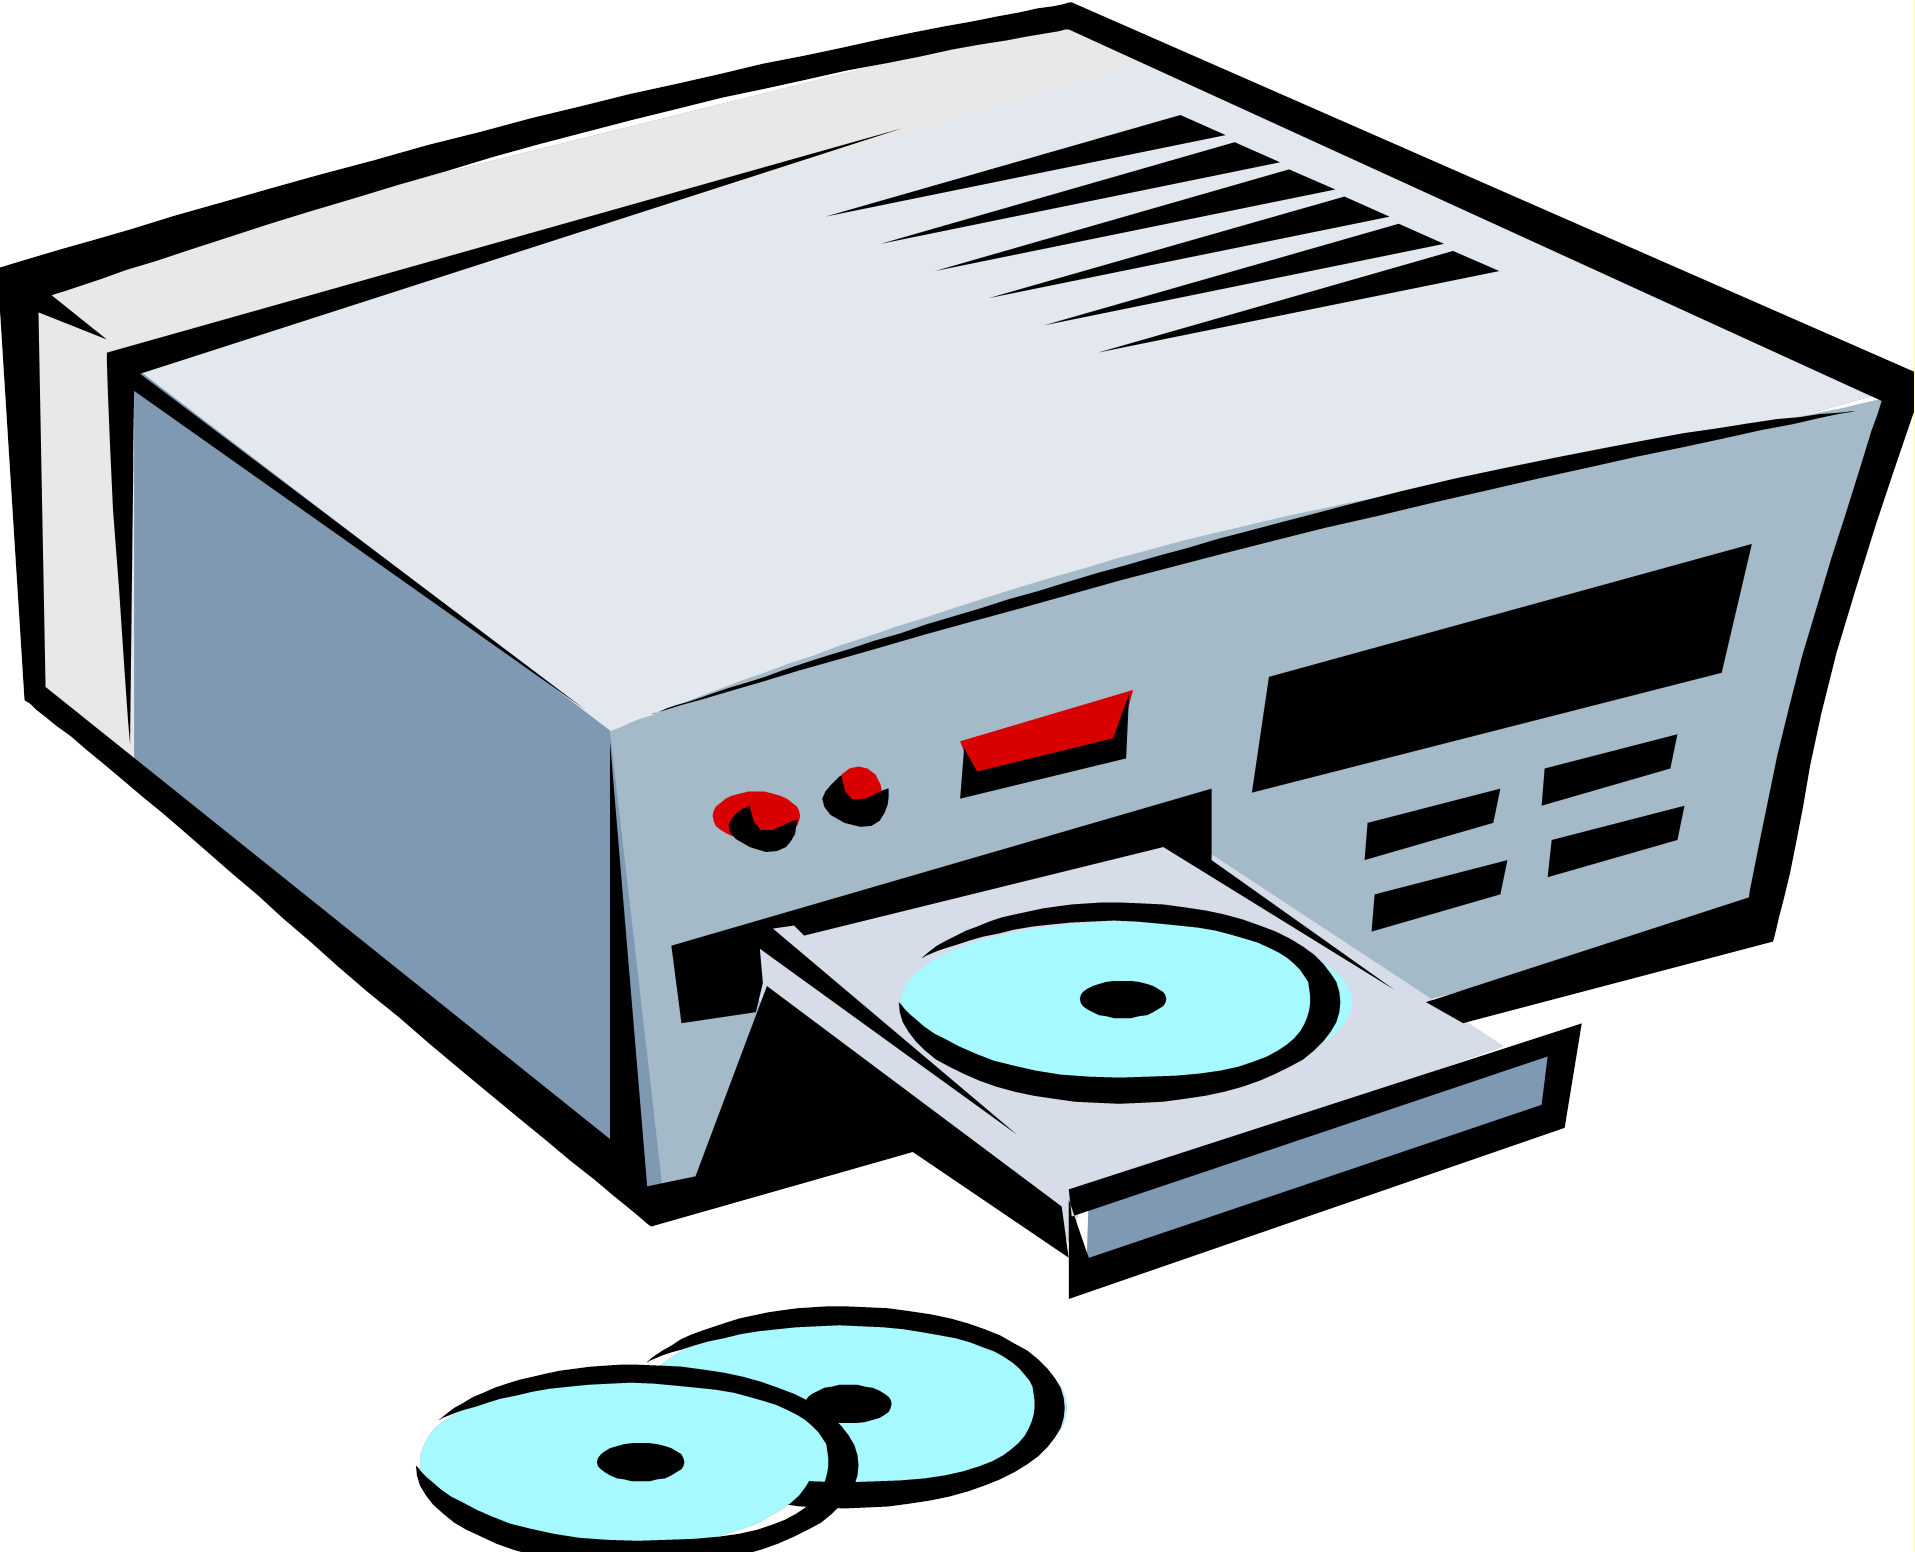 Dvd drive clipart png download Dvd Player Clipart   Free download best Dvd Player Clipart on ... png download